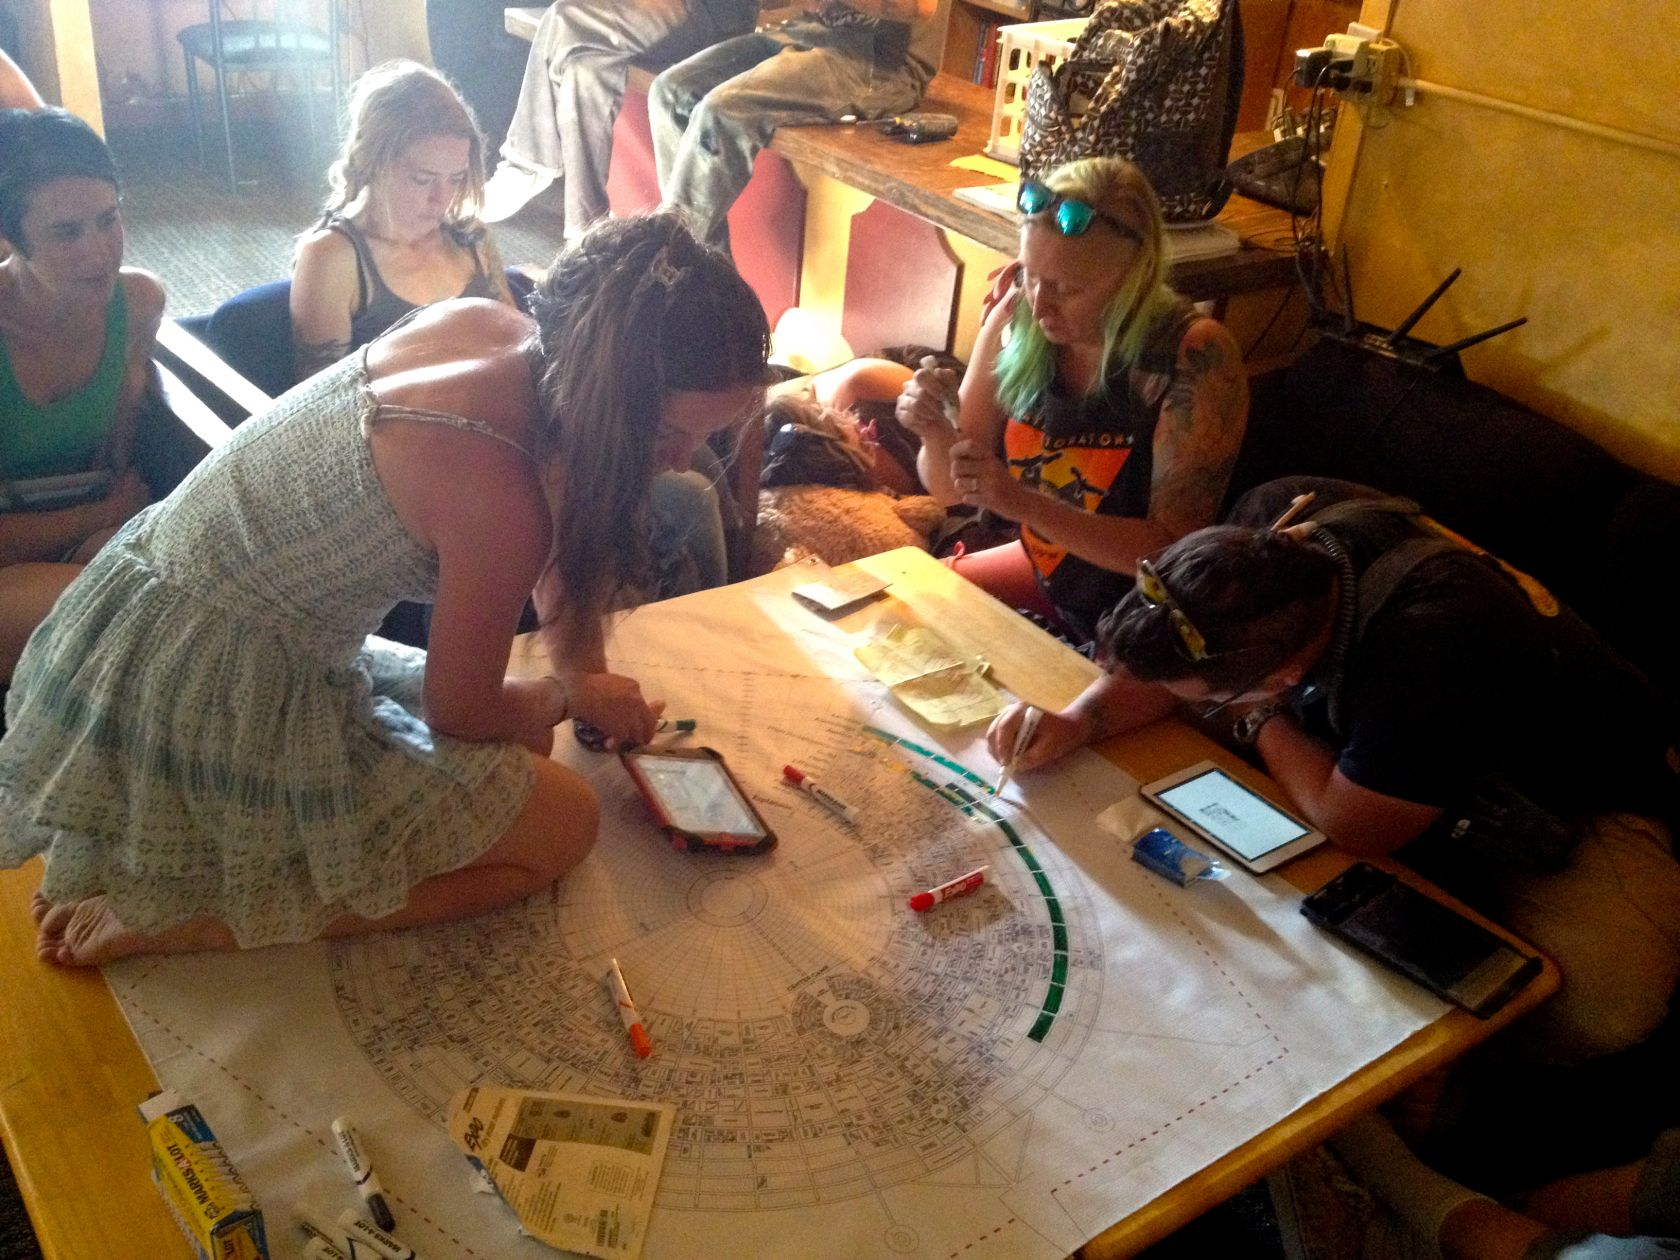 Scribes pore over the MOOP map and color in their sections during the daily MOOP Map Coloring Party in the Black Rock Saloon in Gerlach.